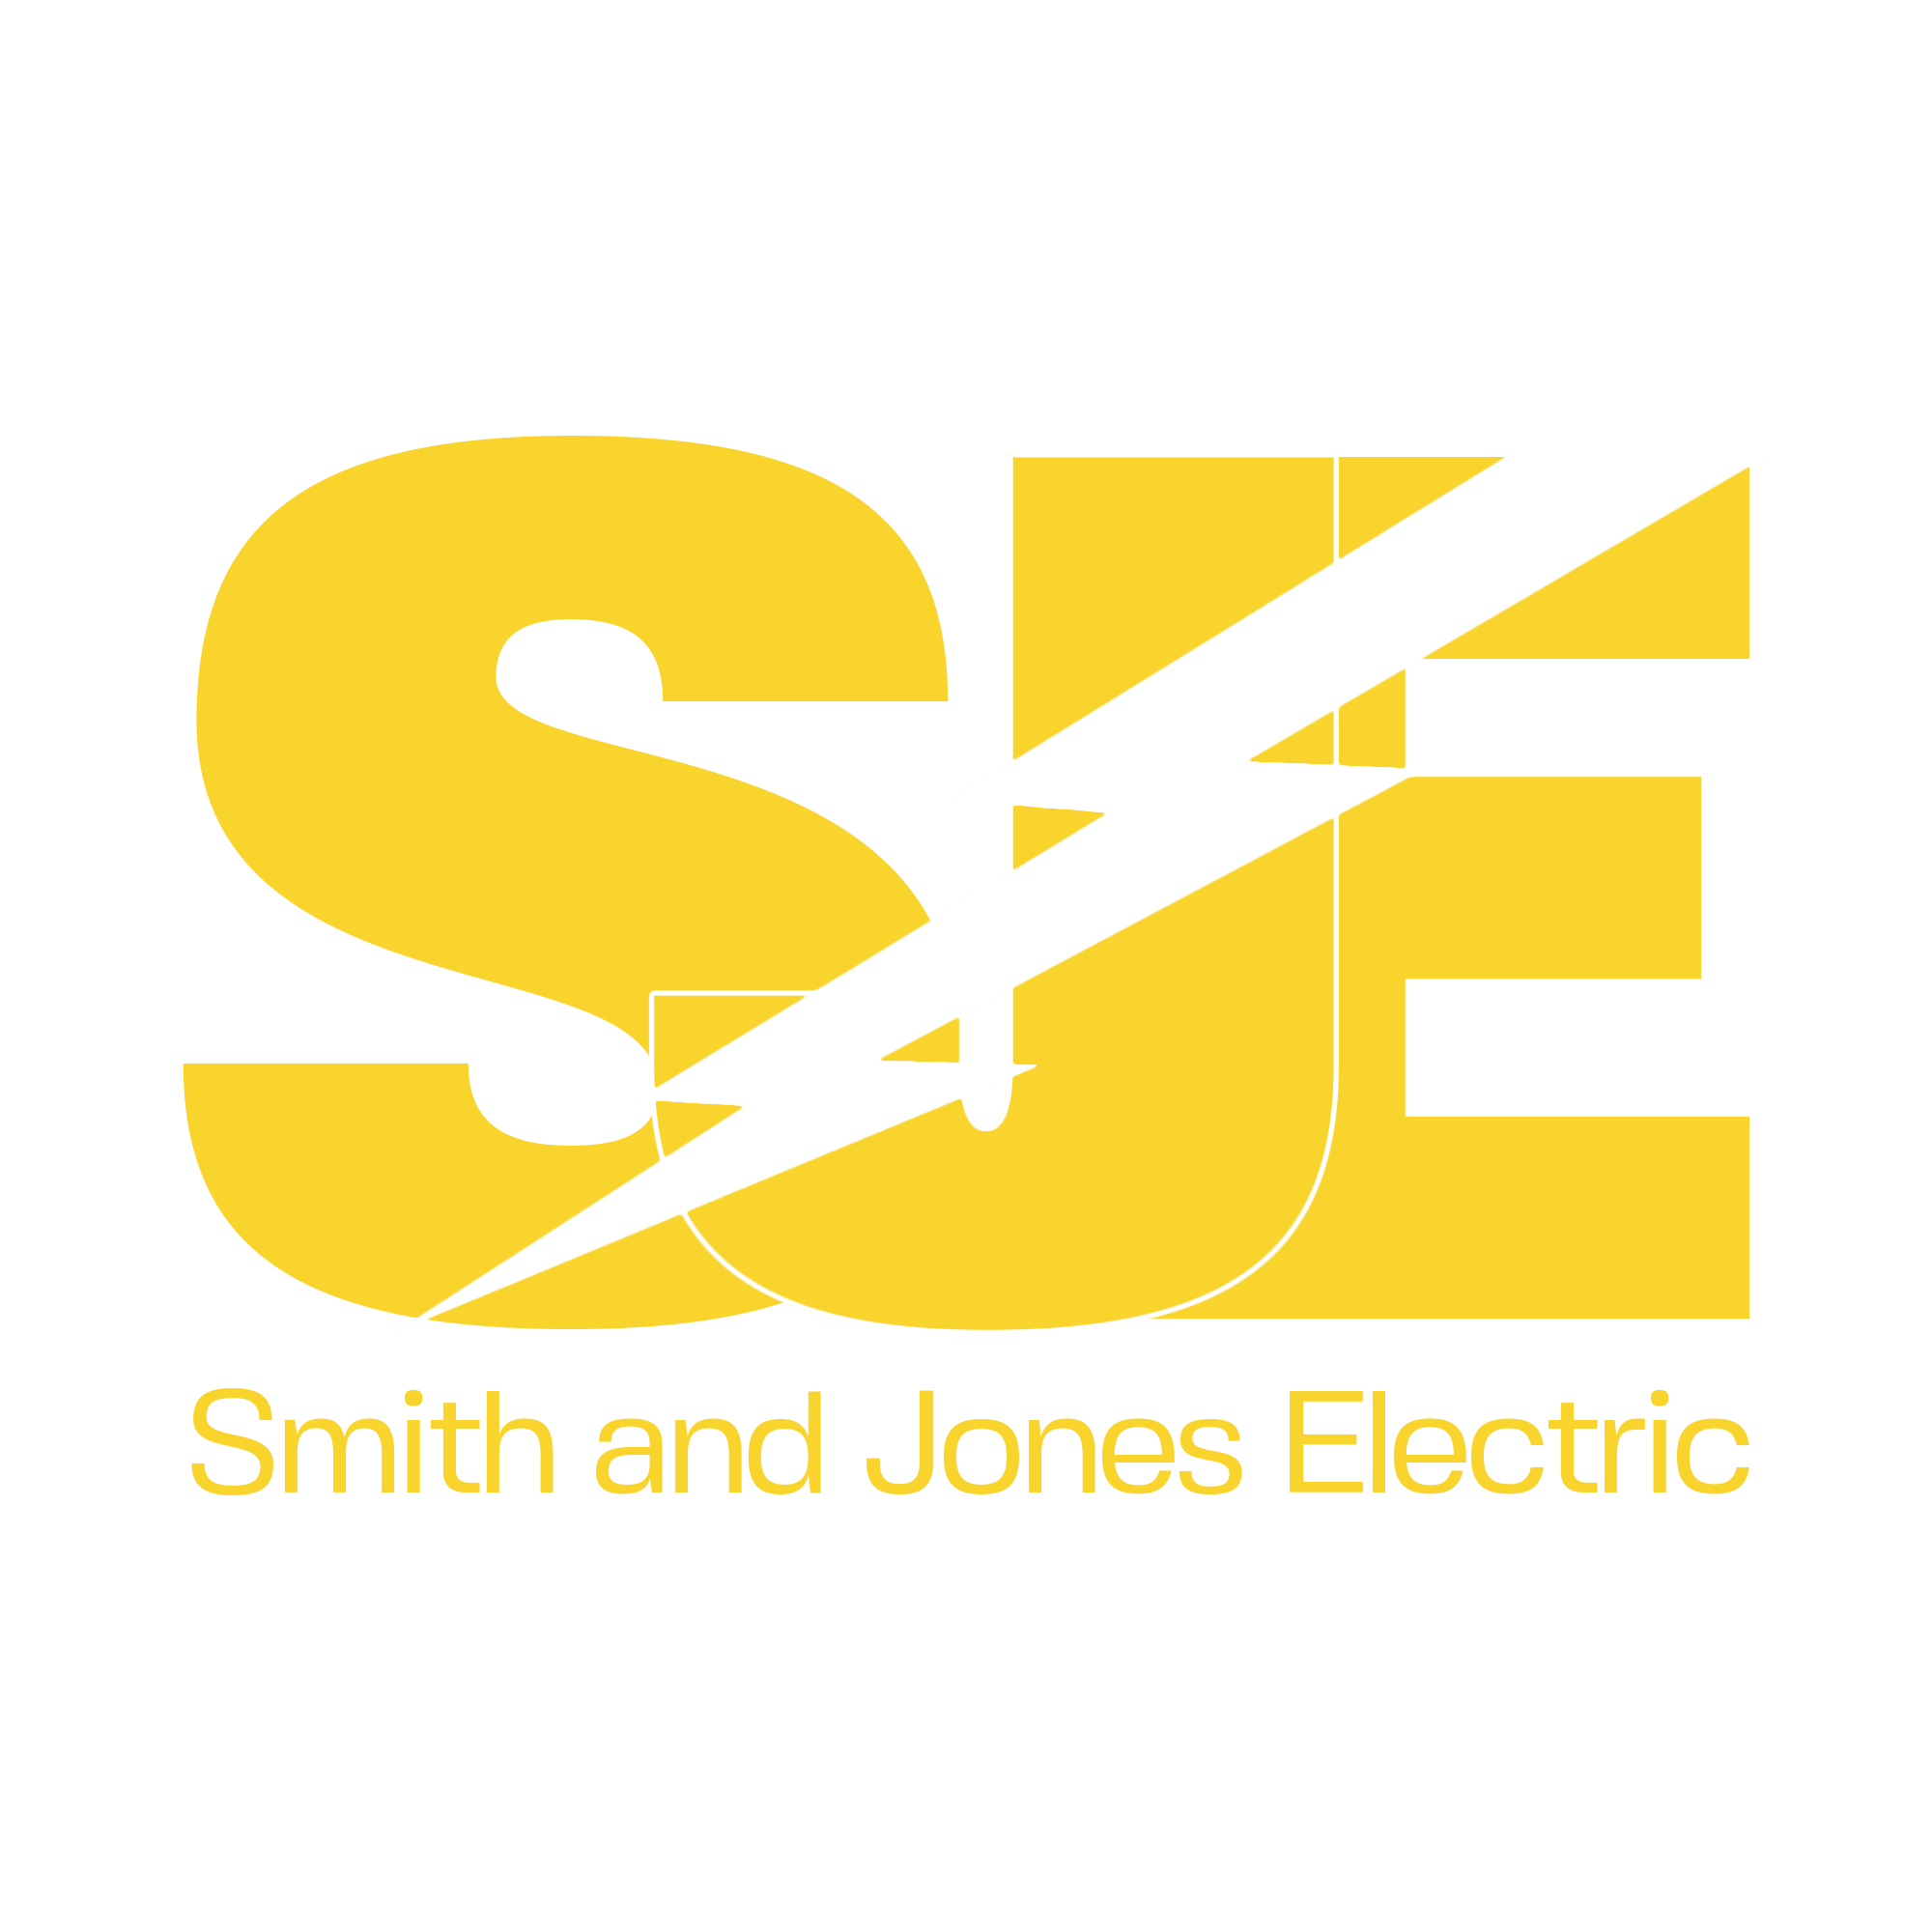 Smith and Jones Electric